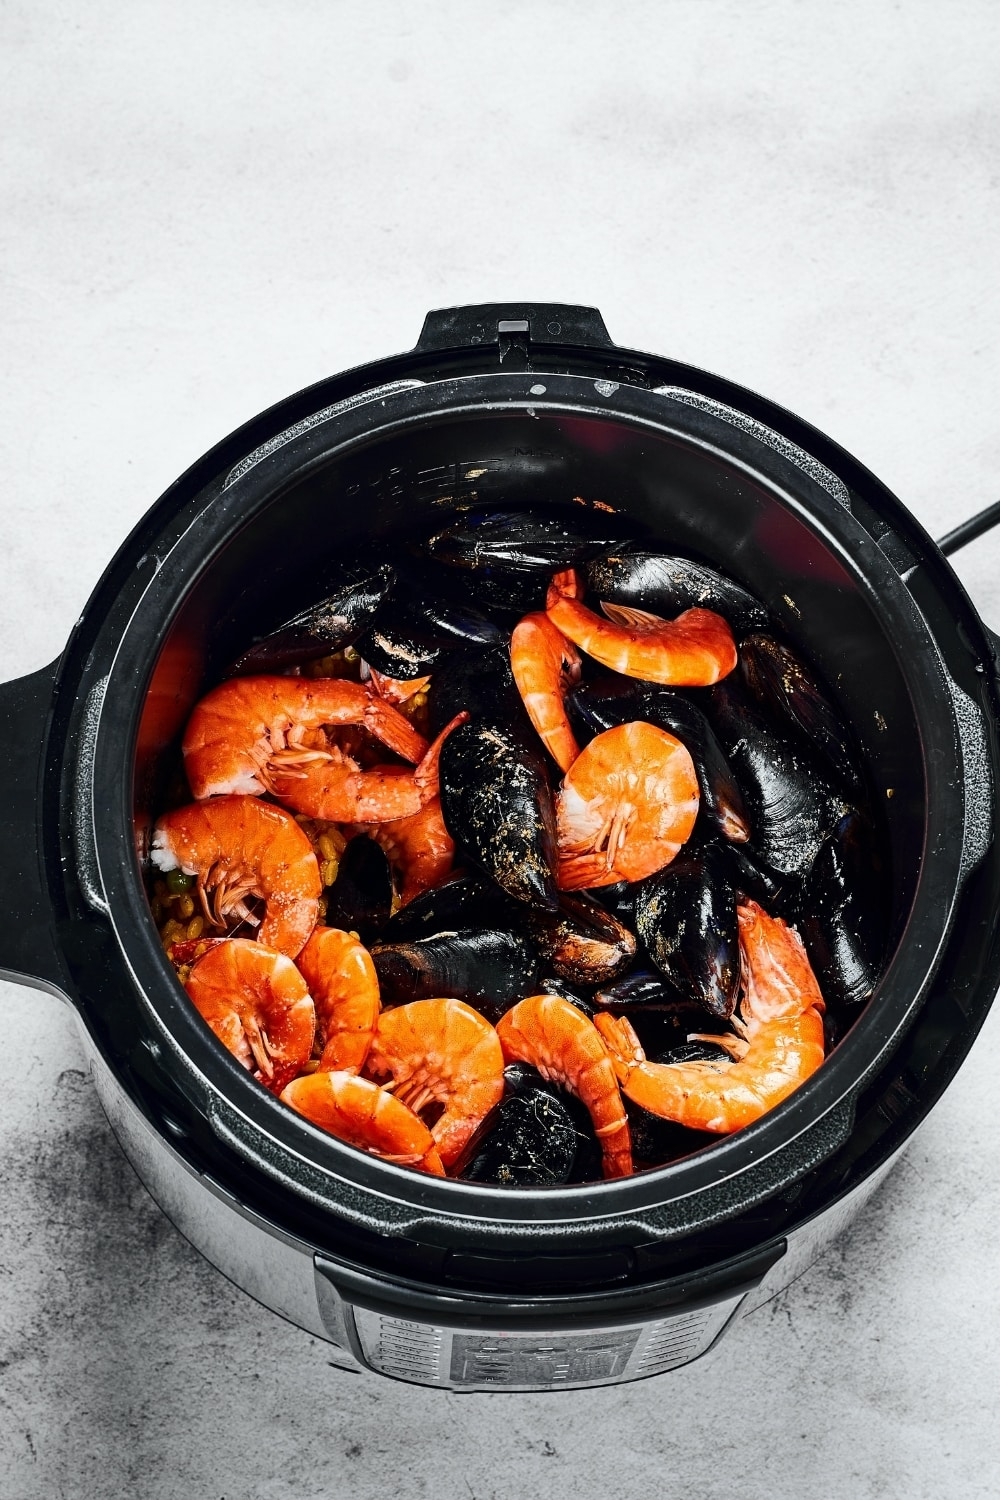 An instant pot with shrimp and mussels in it.